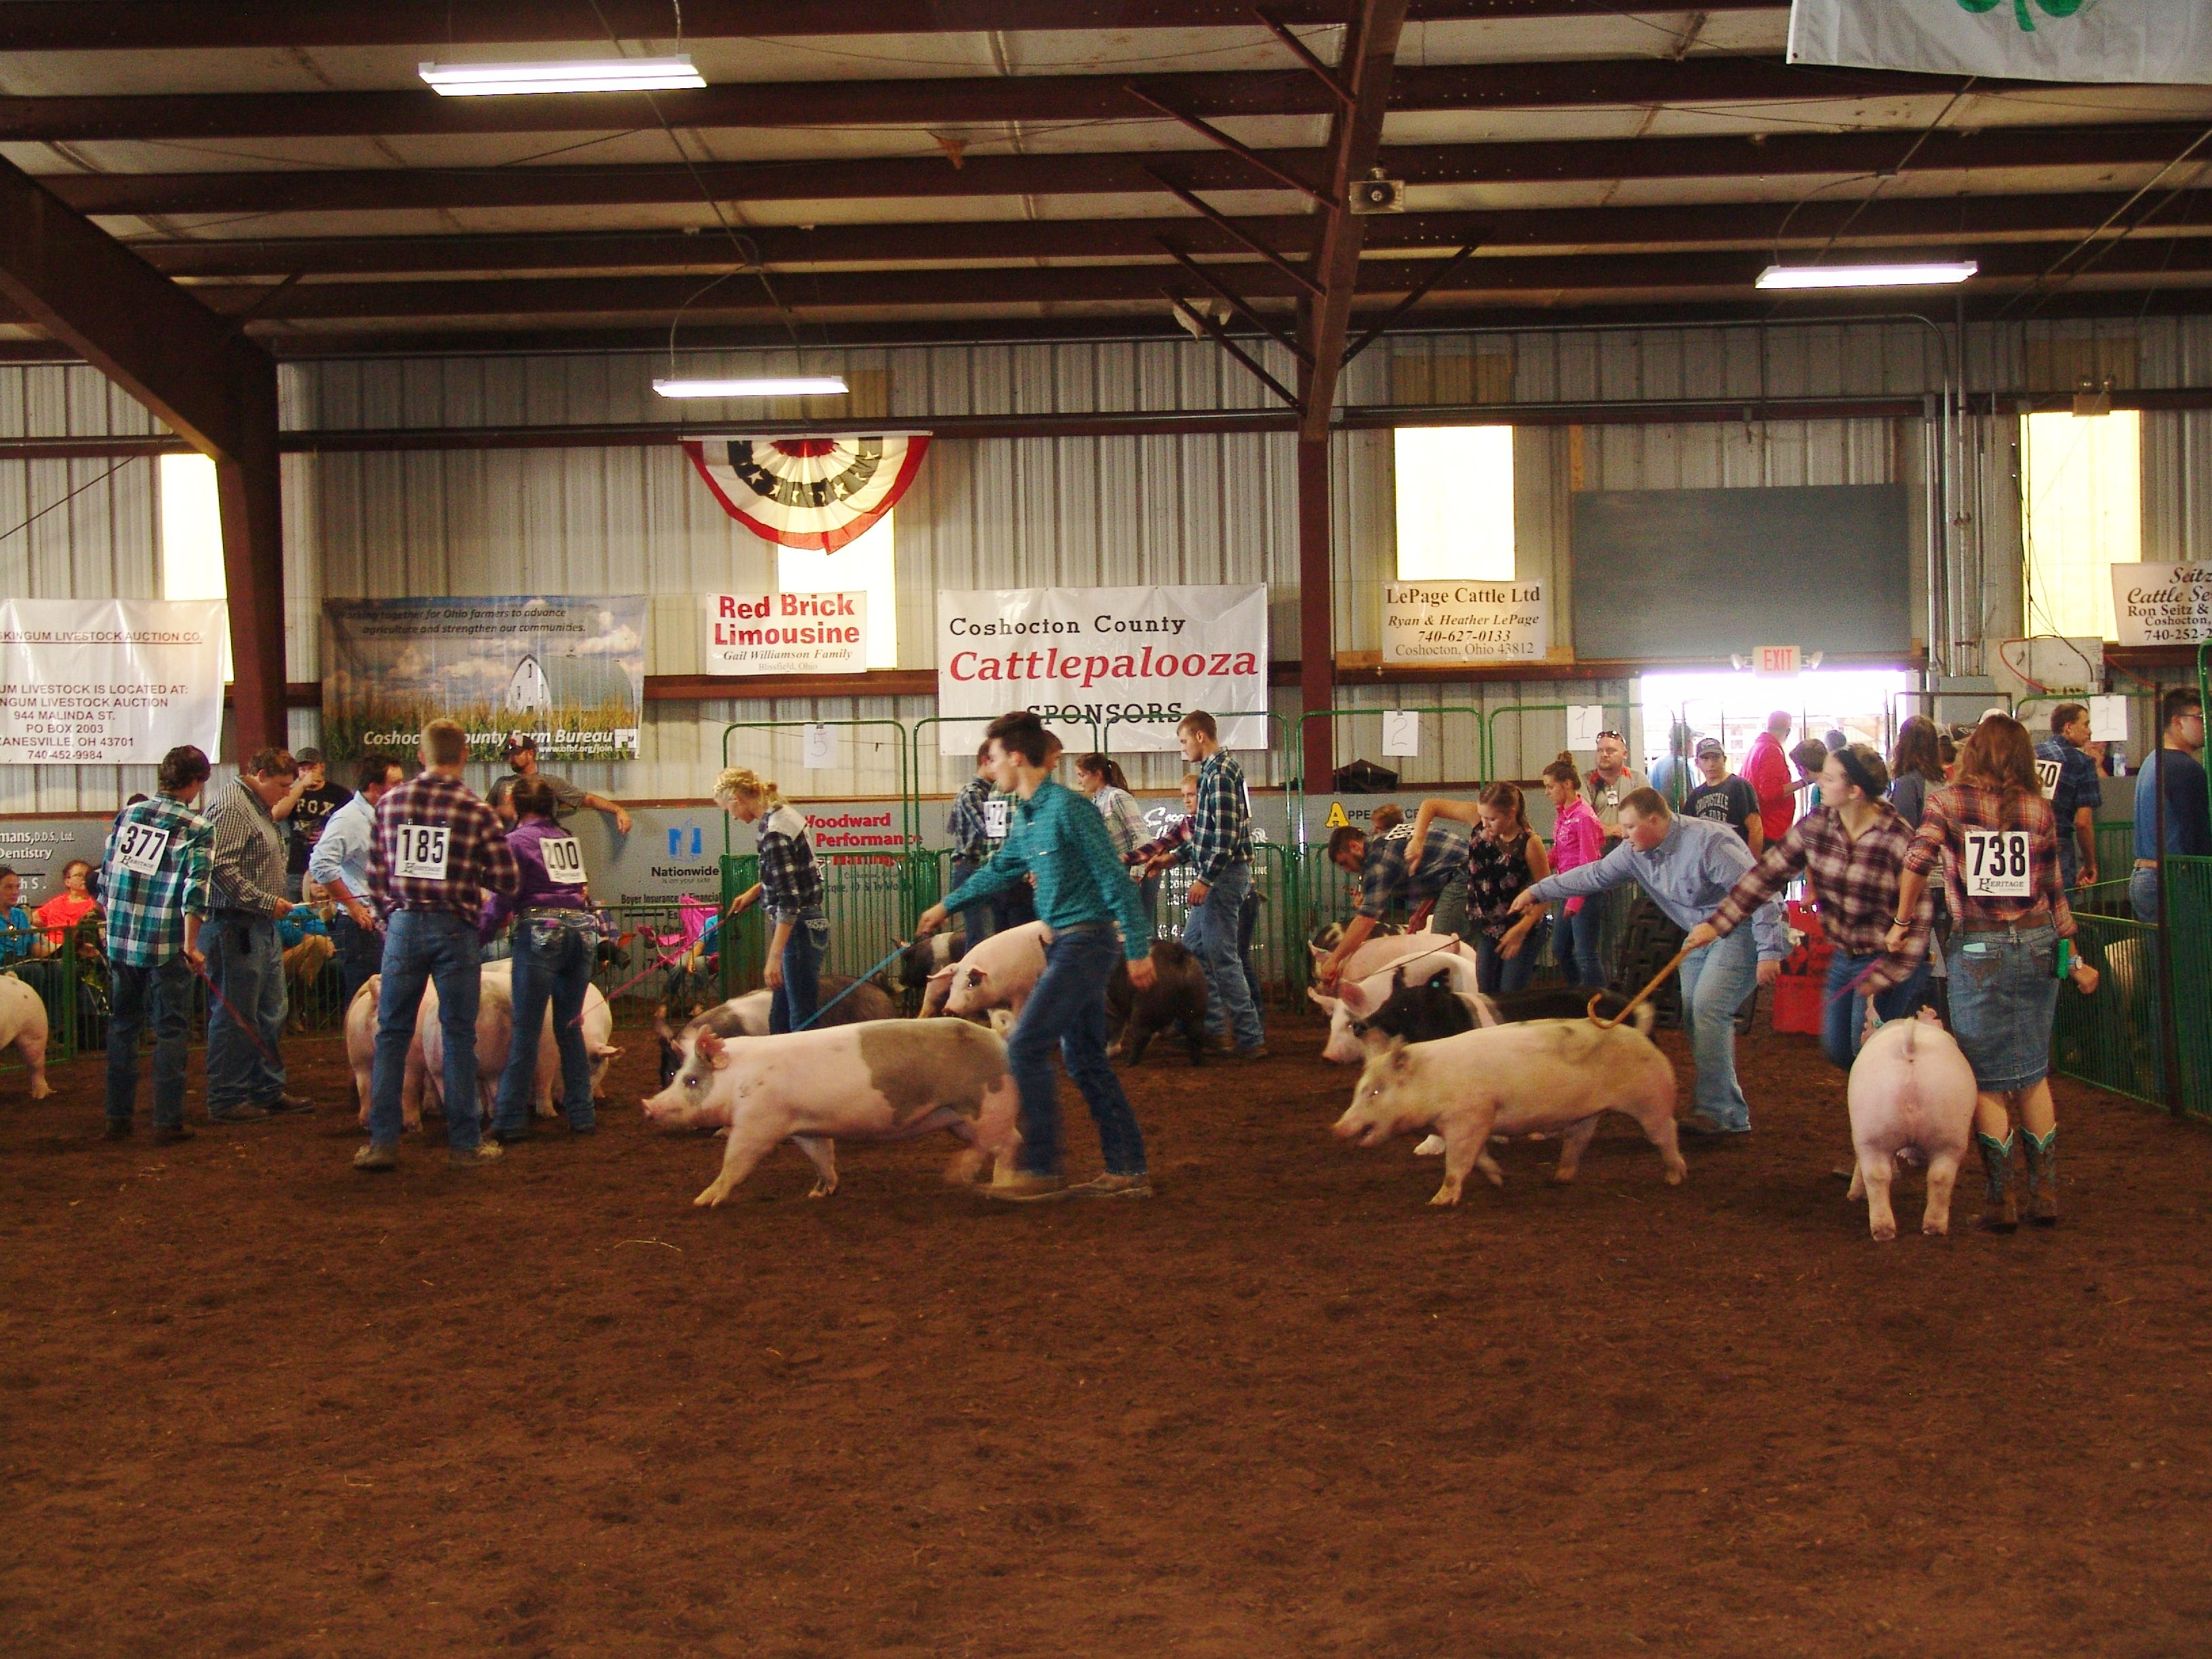 Hog exhibitors showcase their handling skills in the 17 year old class on Sunday during the Jr. Fair Hog Show in Hunter Arena.